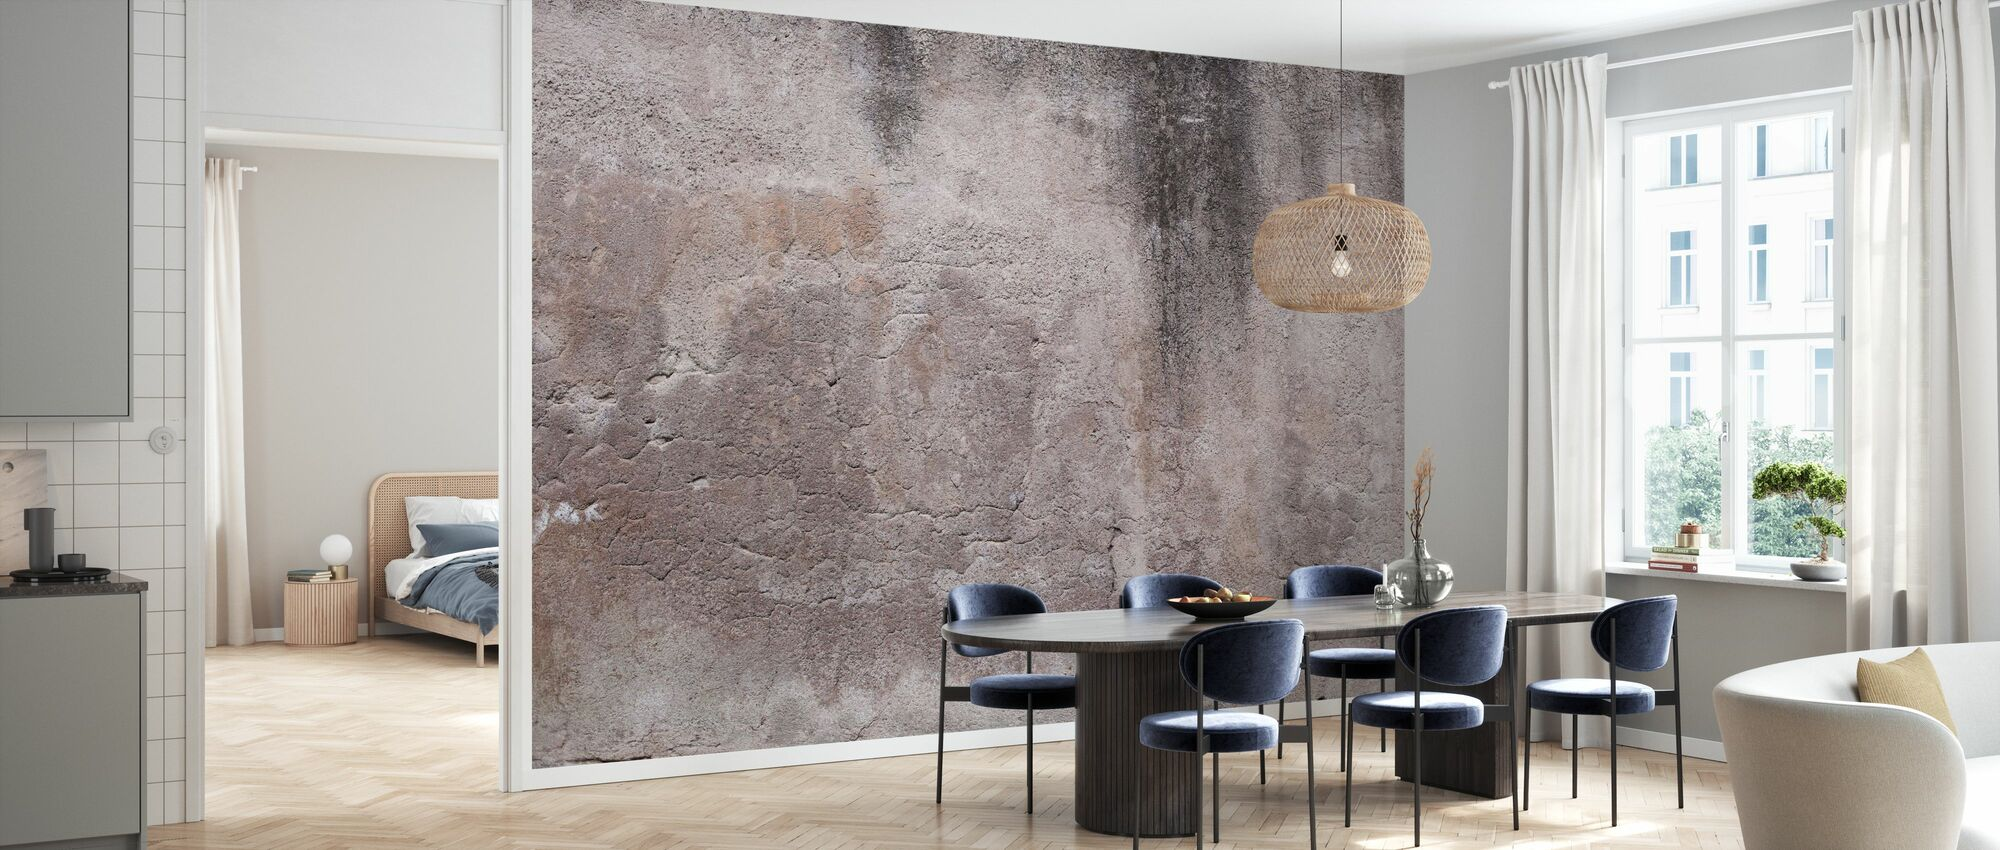 Rose Brown Concrete Wall - Wallpaper - Kitchen